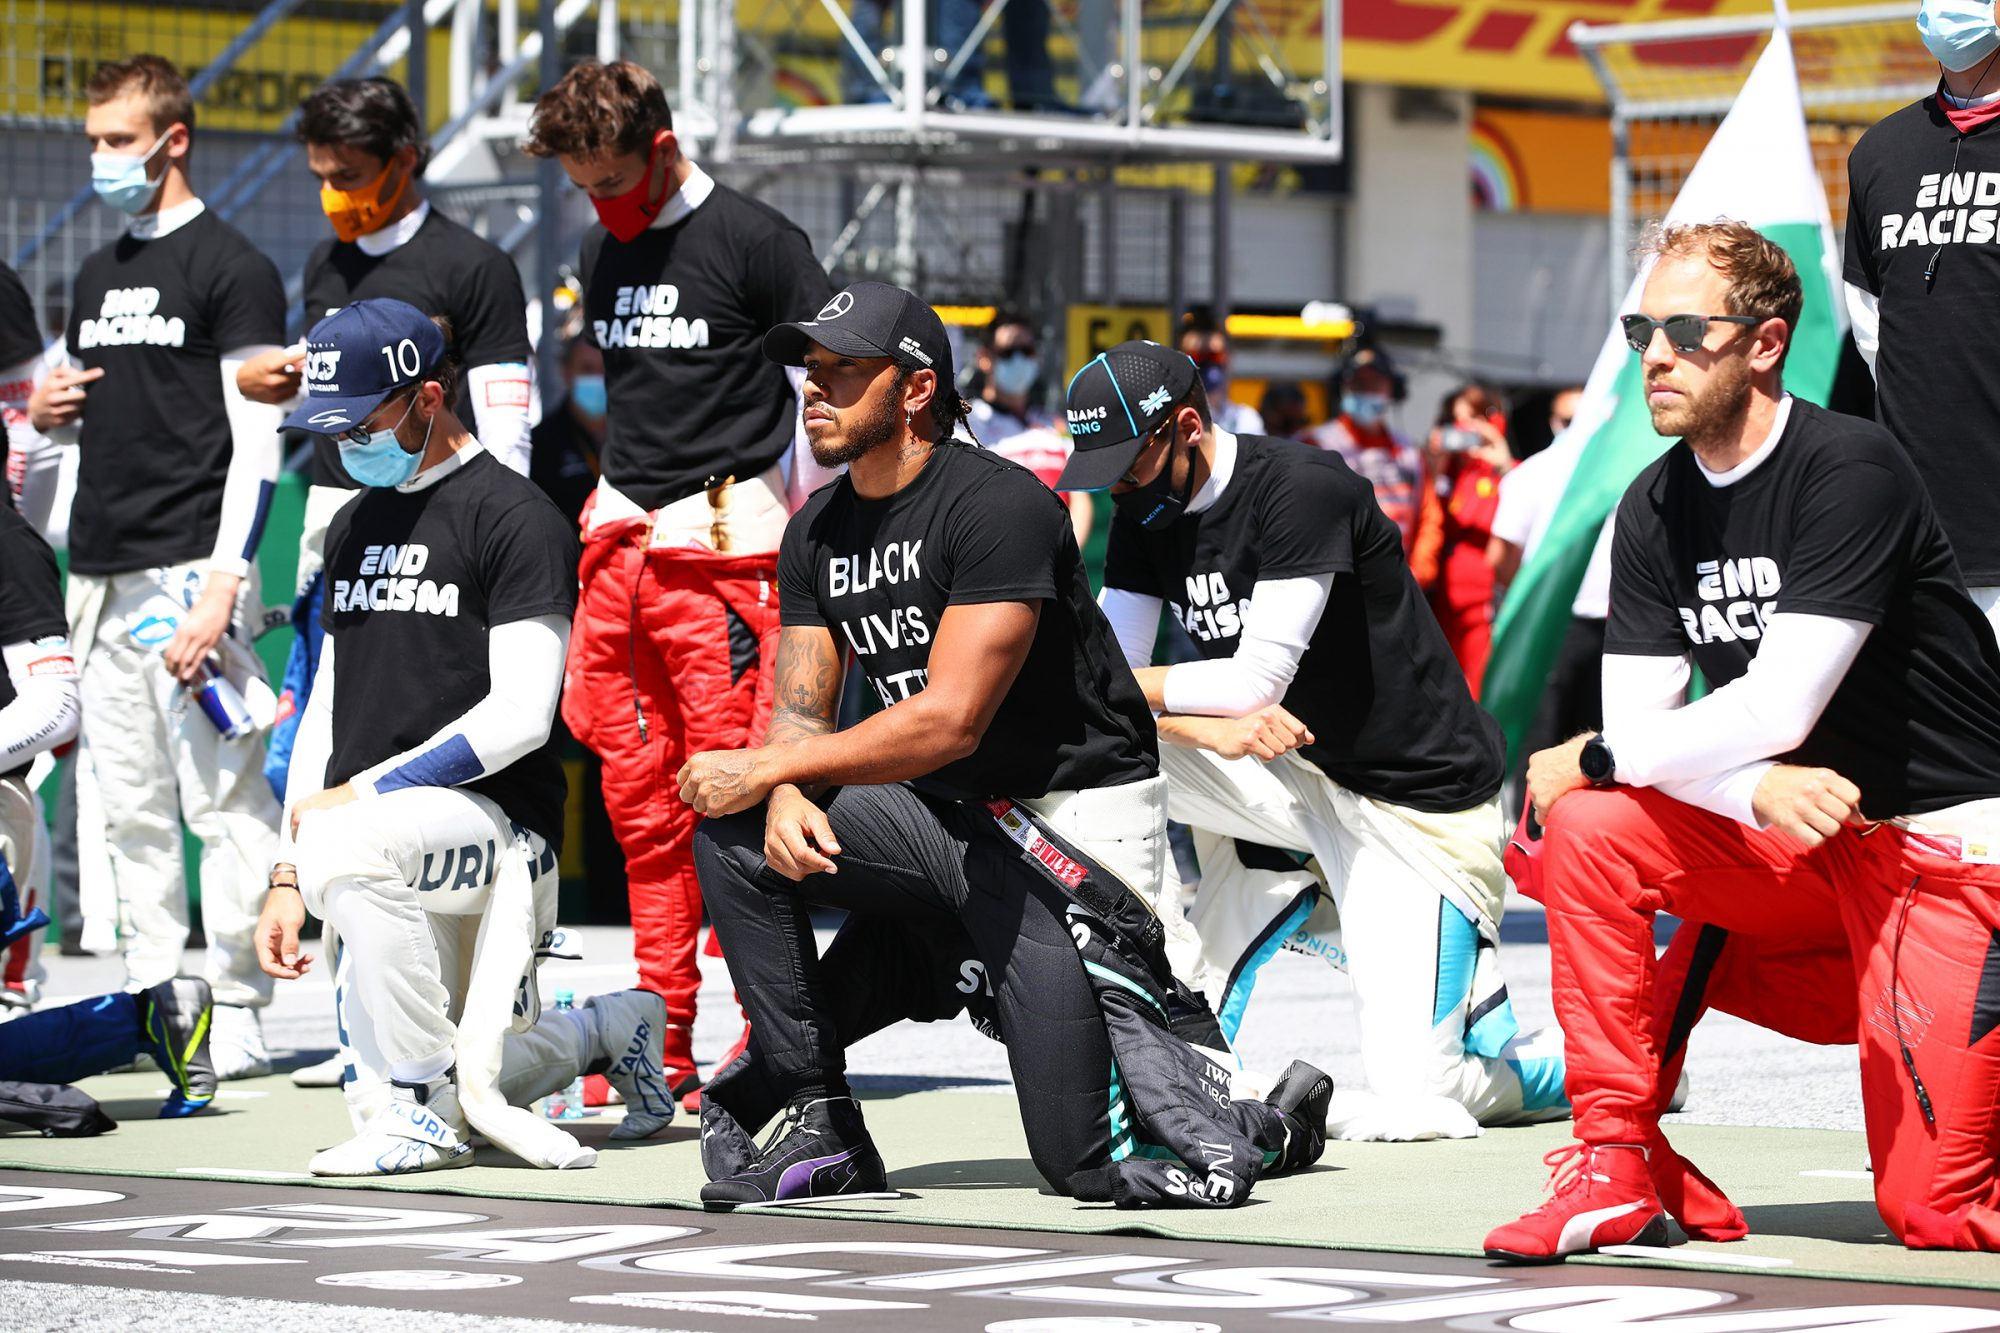 Lewis Hamilton of Great Britain and Mercedes GP and some of the F1 drivers take a knee on the grid in support of the Black Lives Matter movement ahead of the Formula One Grand Prix of Austria at Red Bull Ring on July 05, 2020